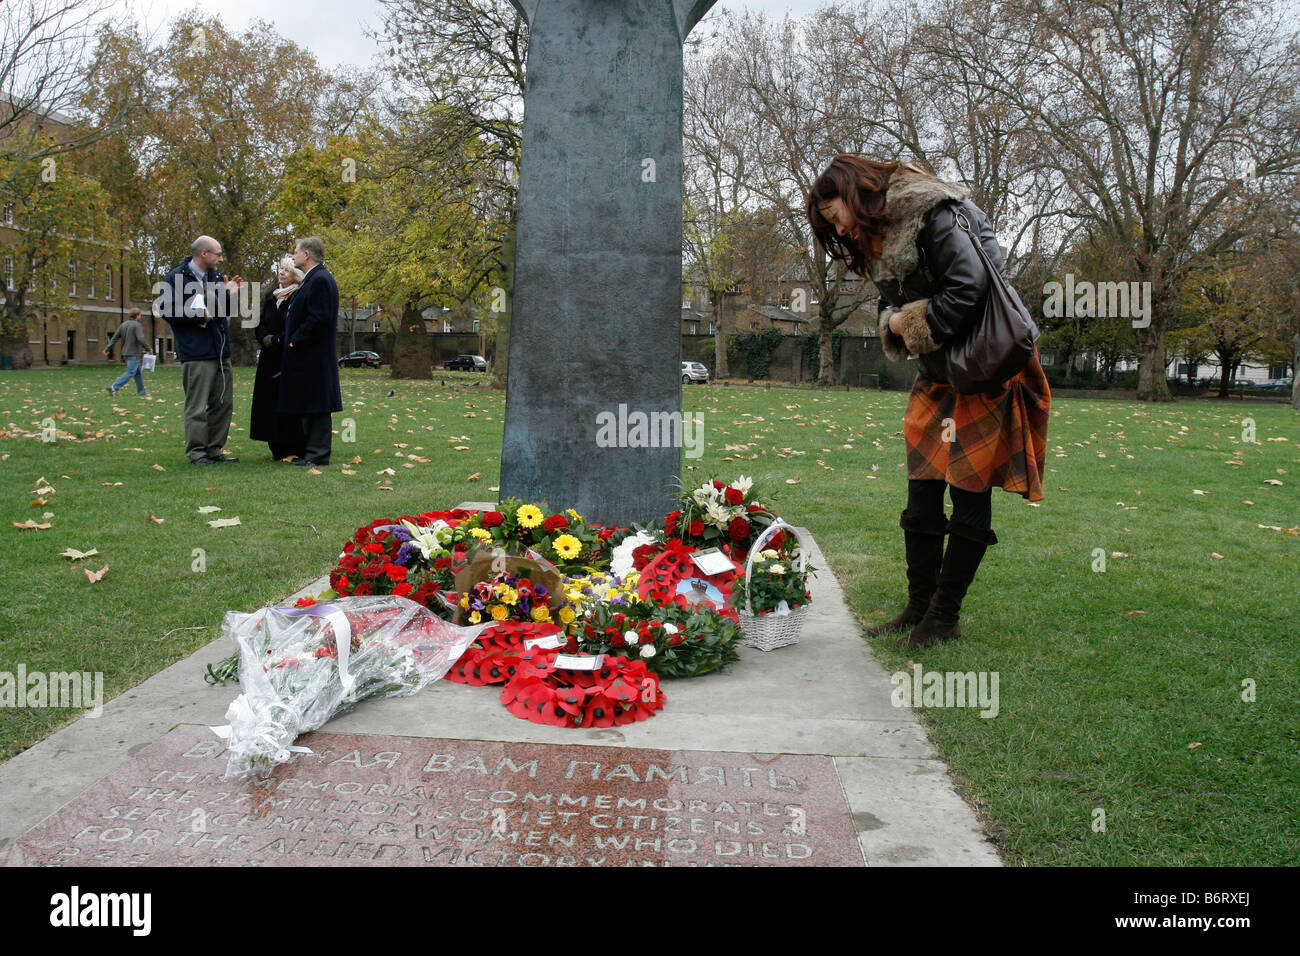 A lady looking at the Remembrance Day Tributes at the Soviet War Memorial, Central London. - Stock Image